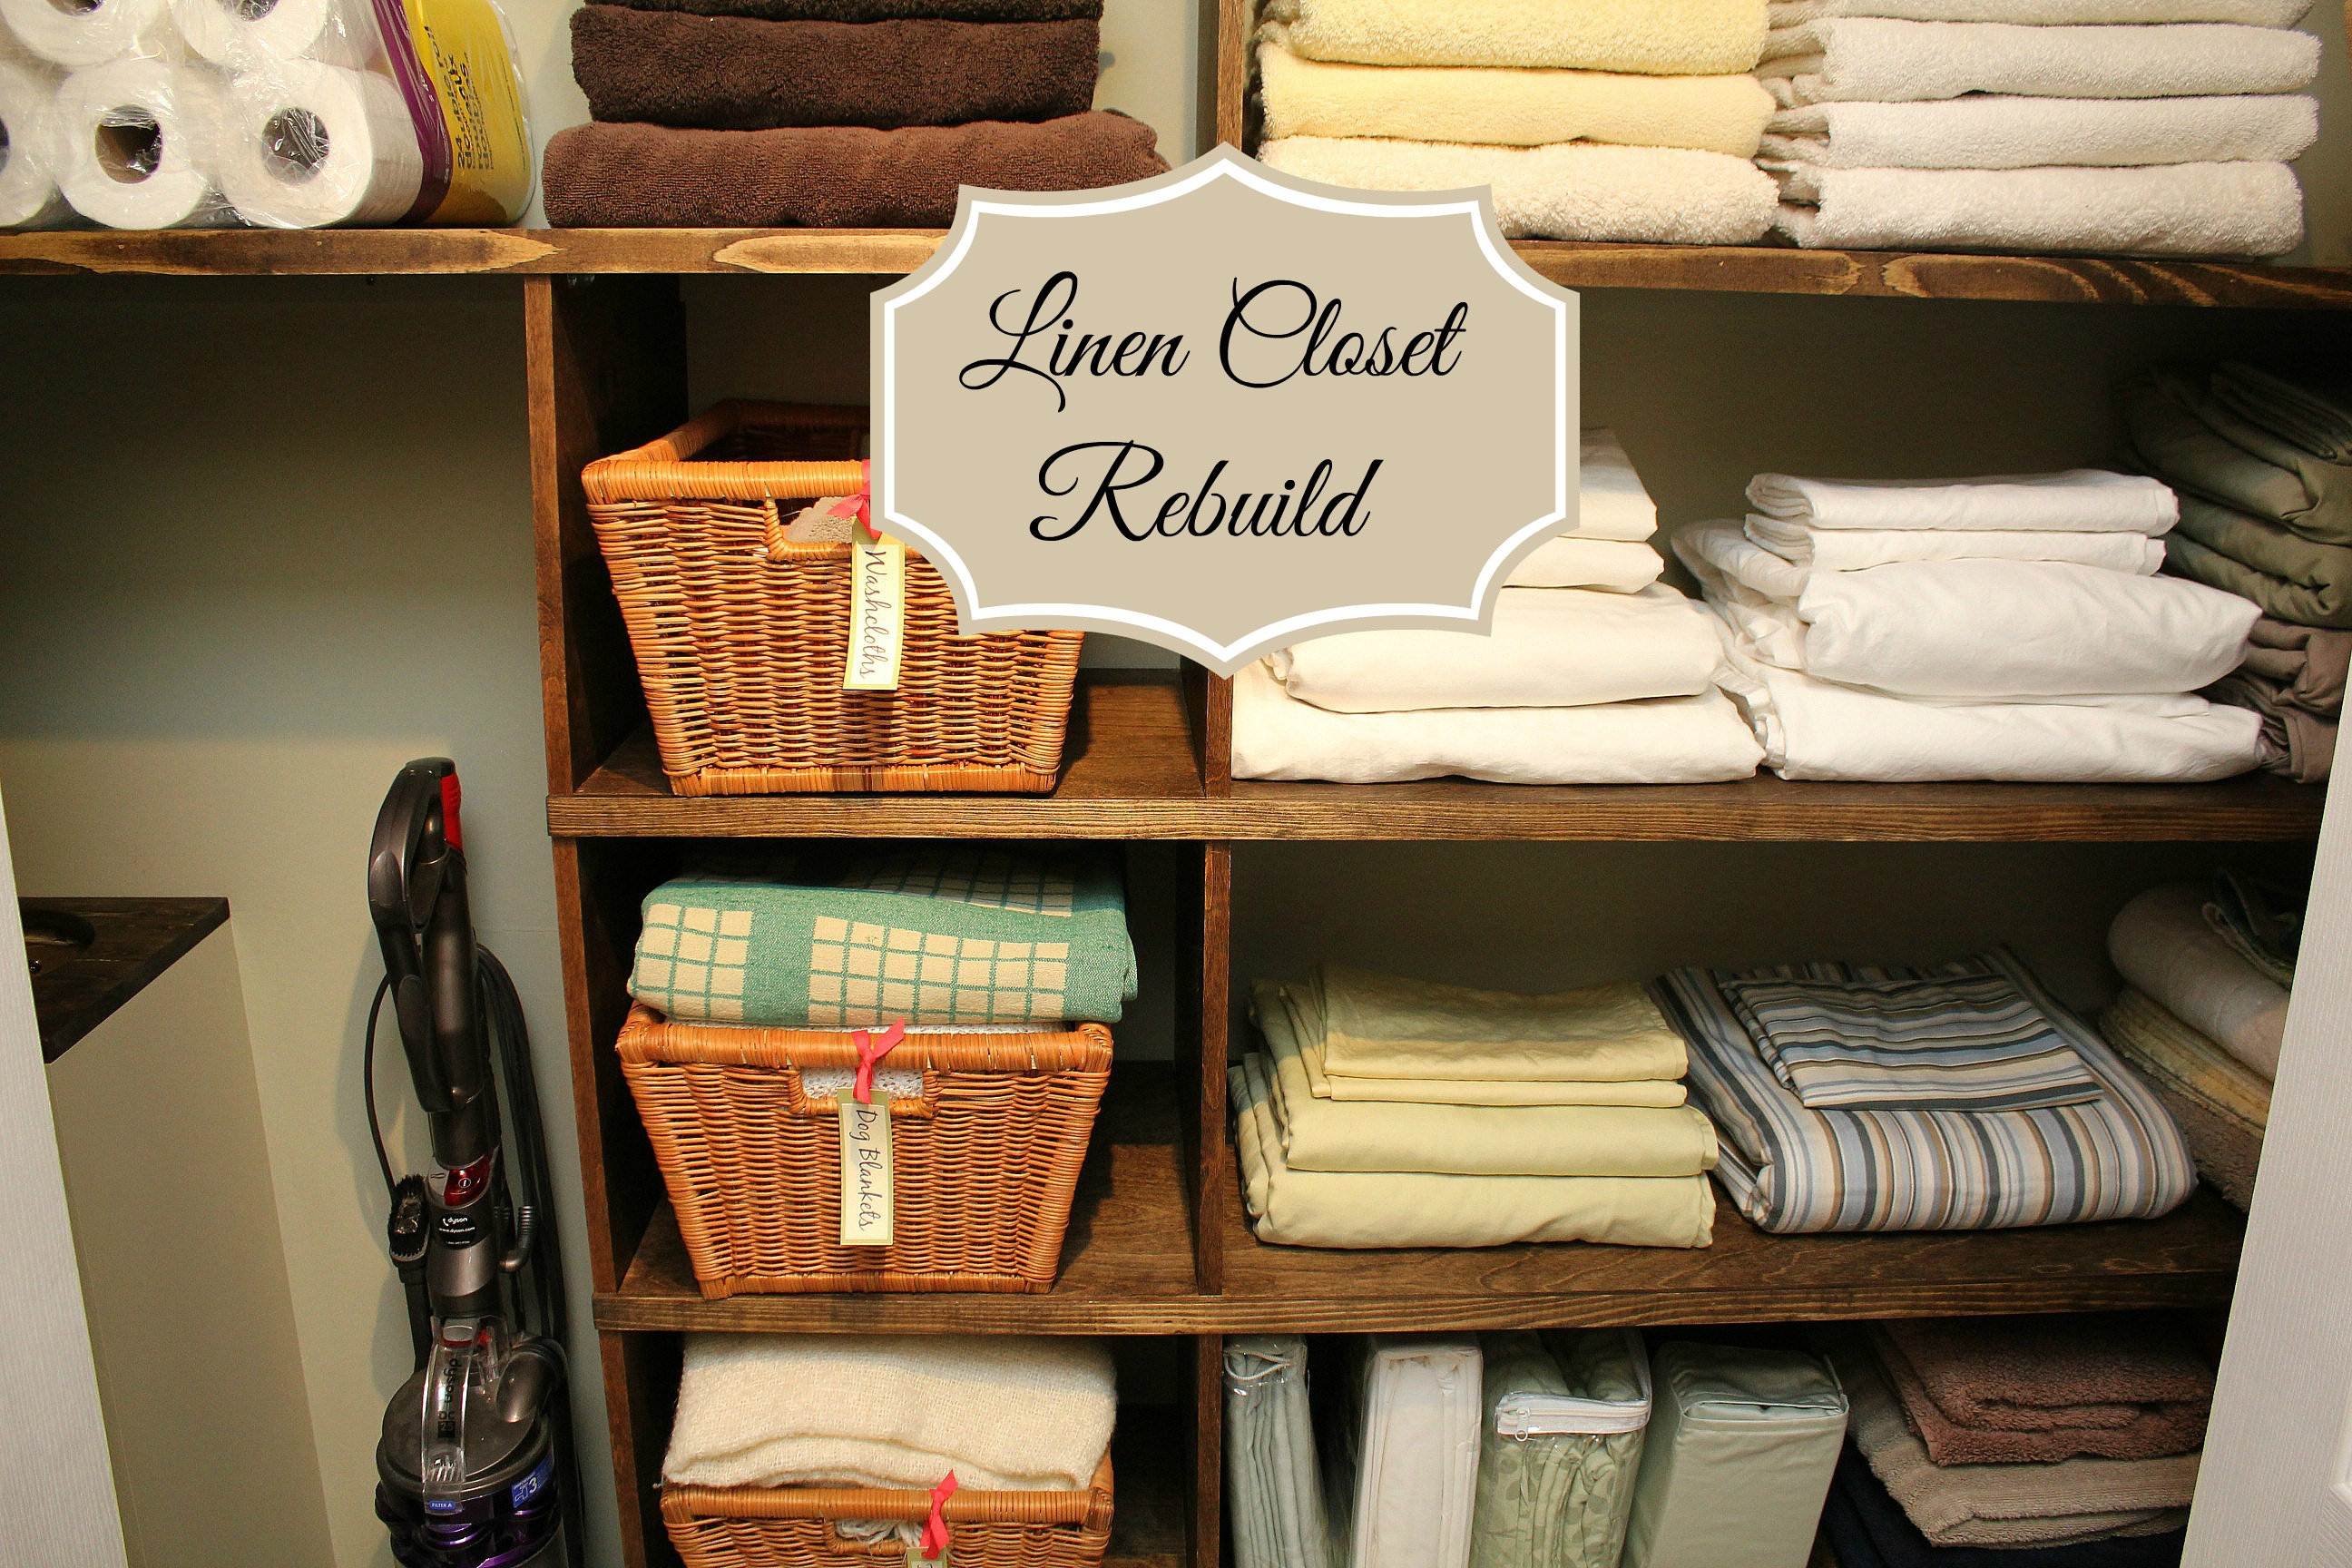 Linen Closet Organizer Systems Turtles And Tails February 2014